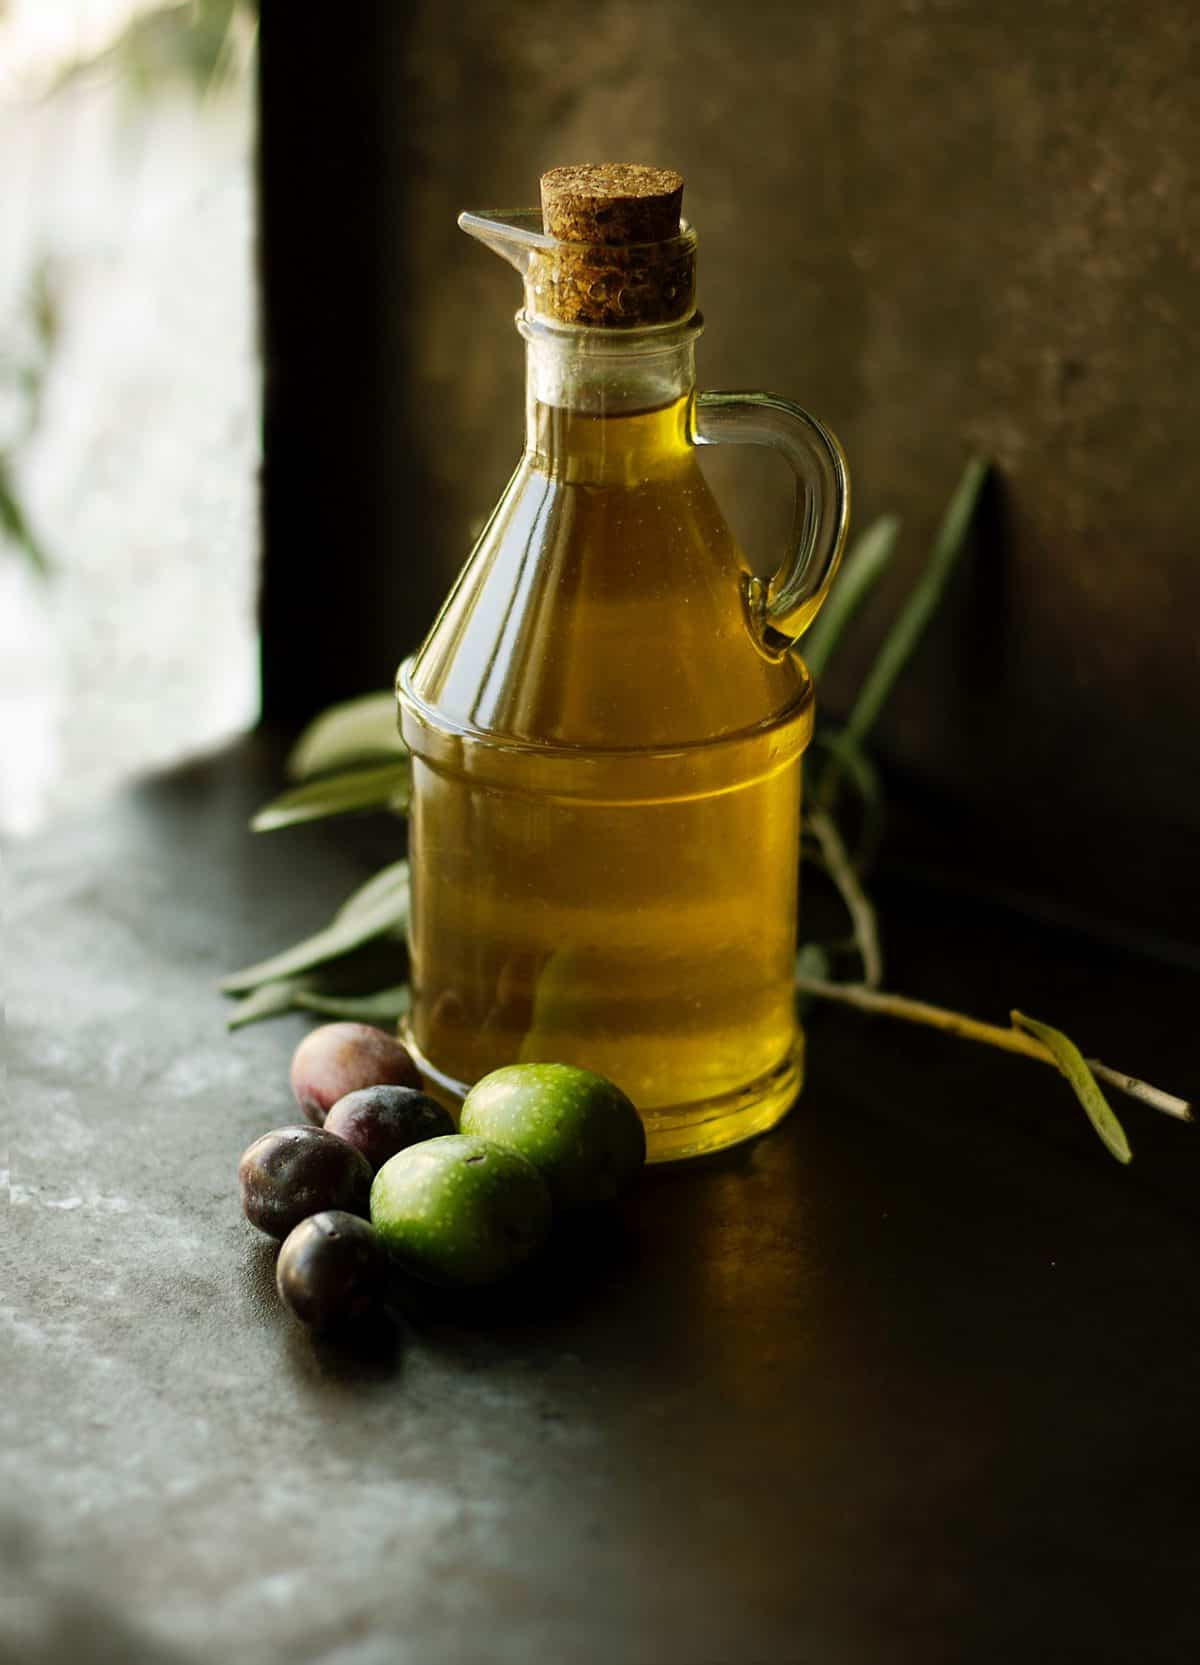 Clear bottle of olive oil and a handful of olives atop a dark surface.